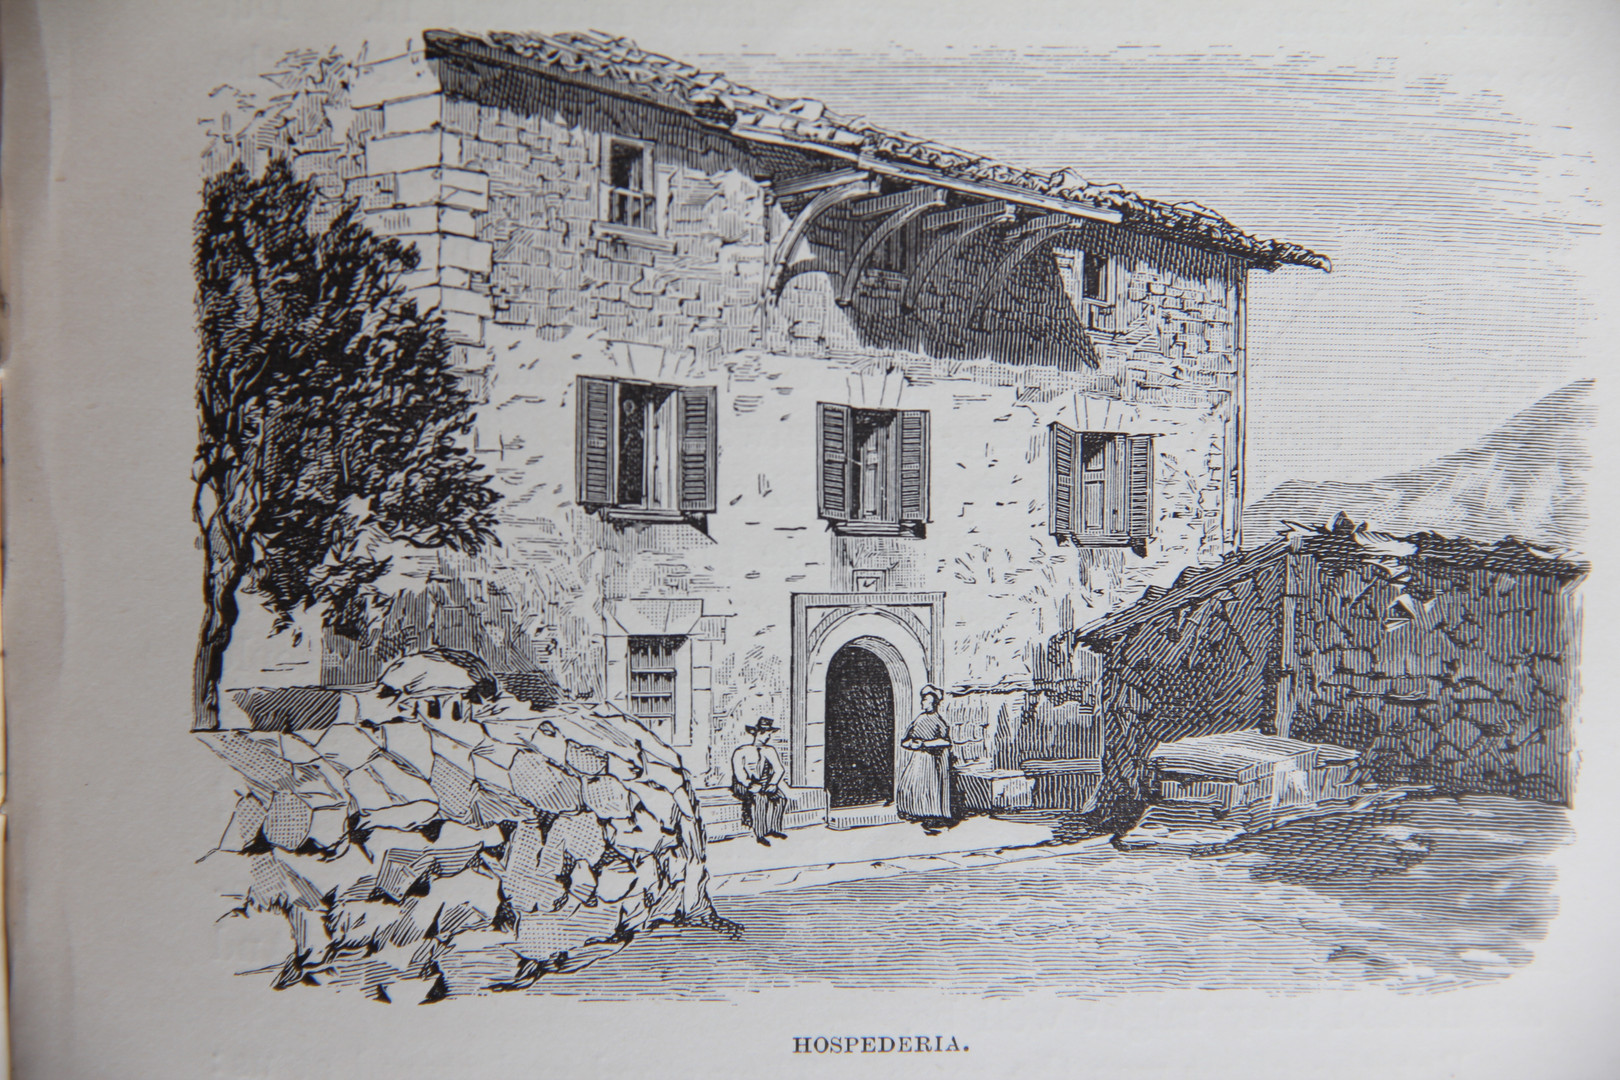 """Ca Madò Pilla's hostelry according to the illustration included in CW Wood's book """"Letters from Majorca"""" (1888)."""